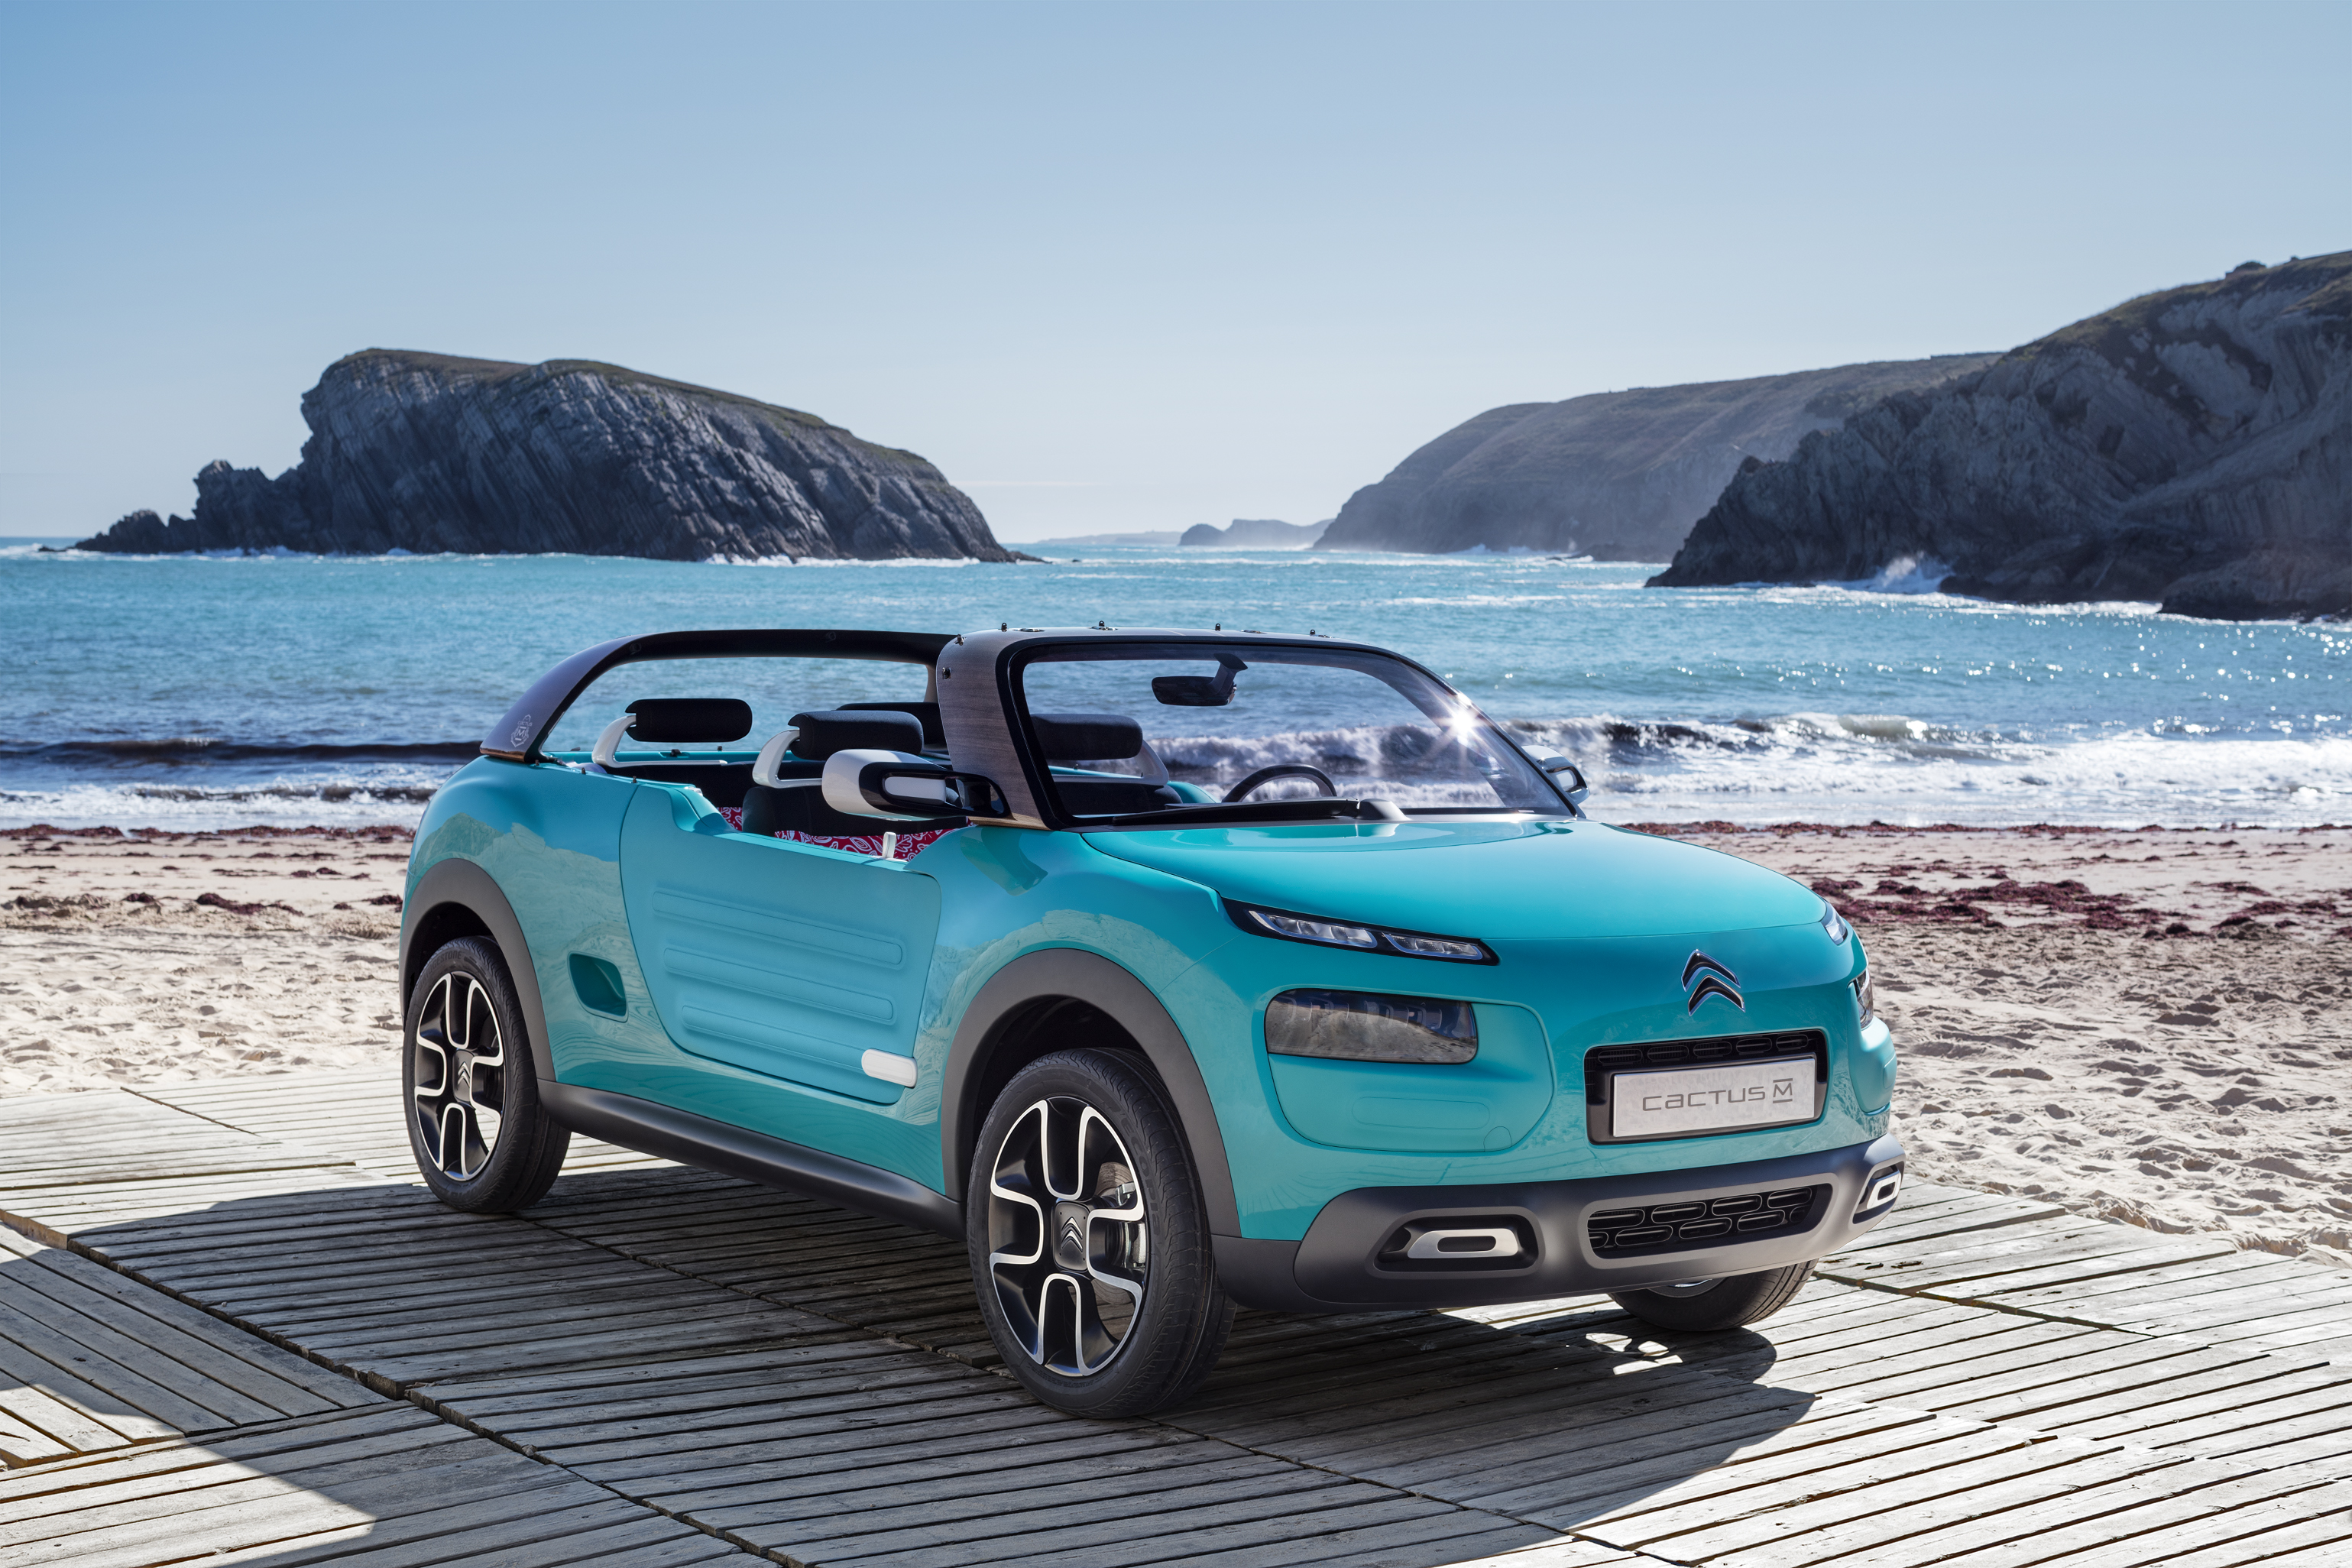 CITROËN Cactus M: free your mind!